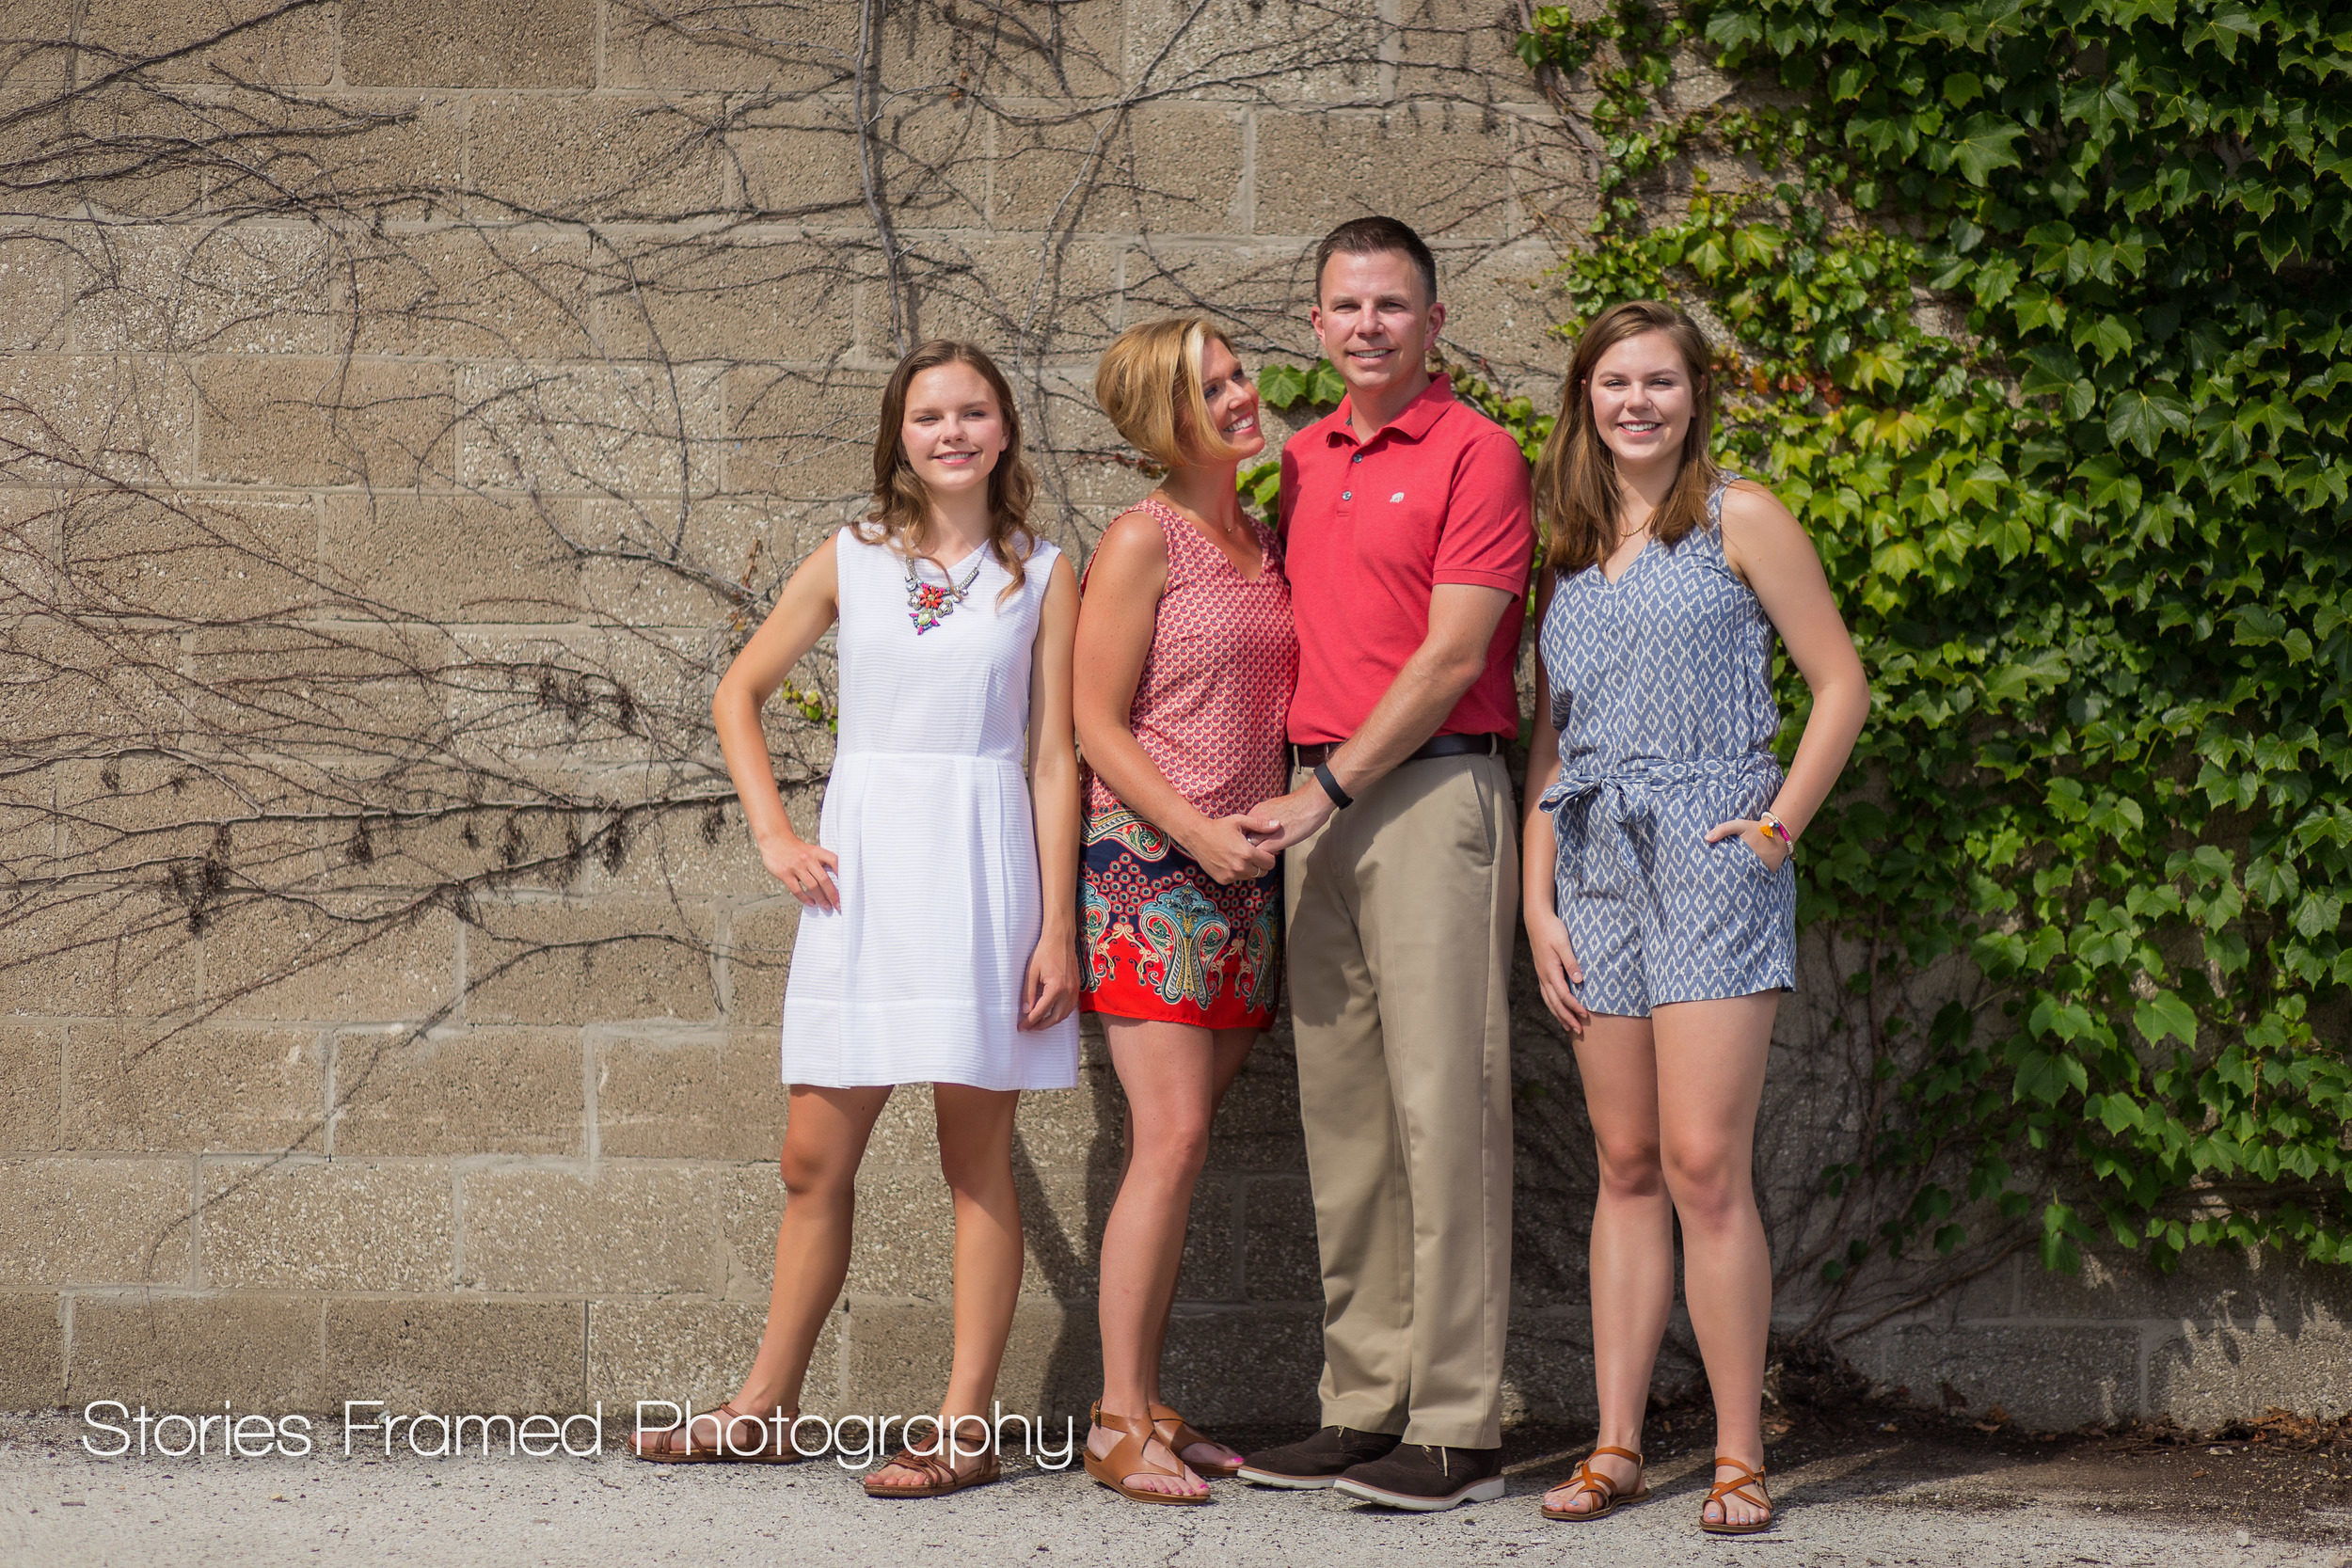 Short Family | Stories Framed Photography | Milwaukee portrait session